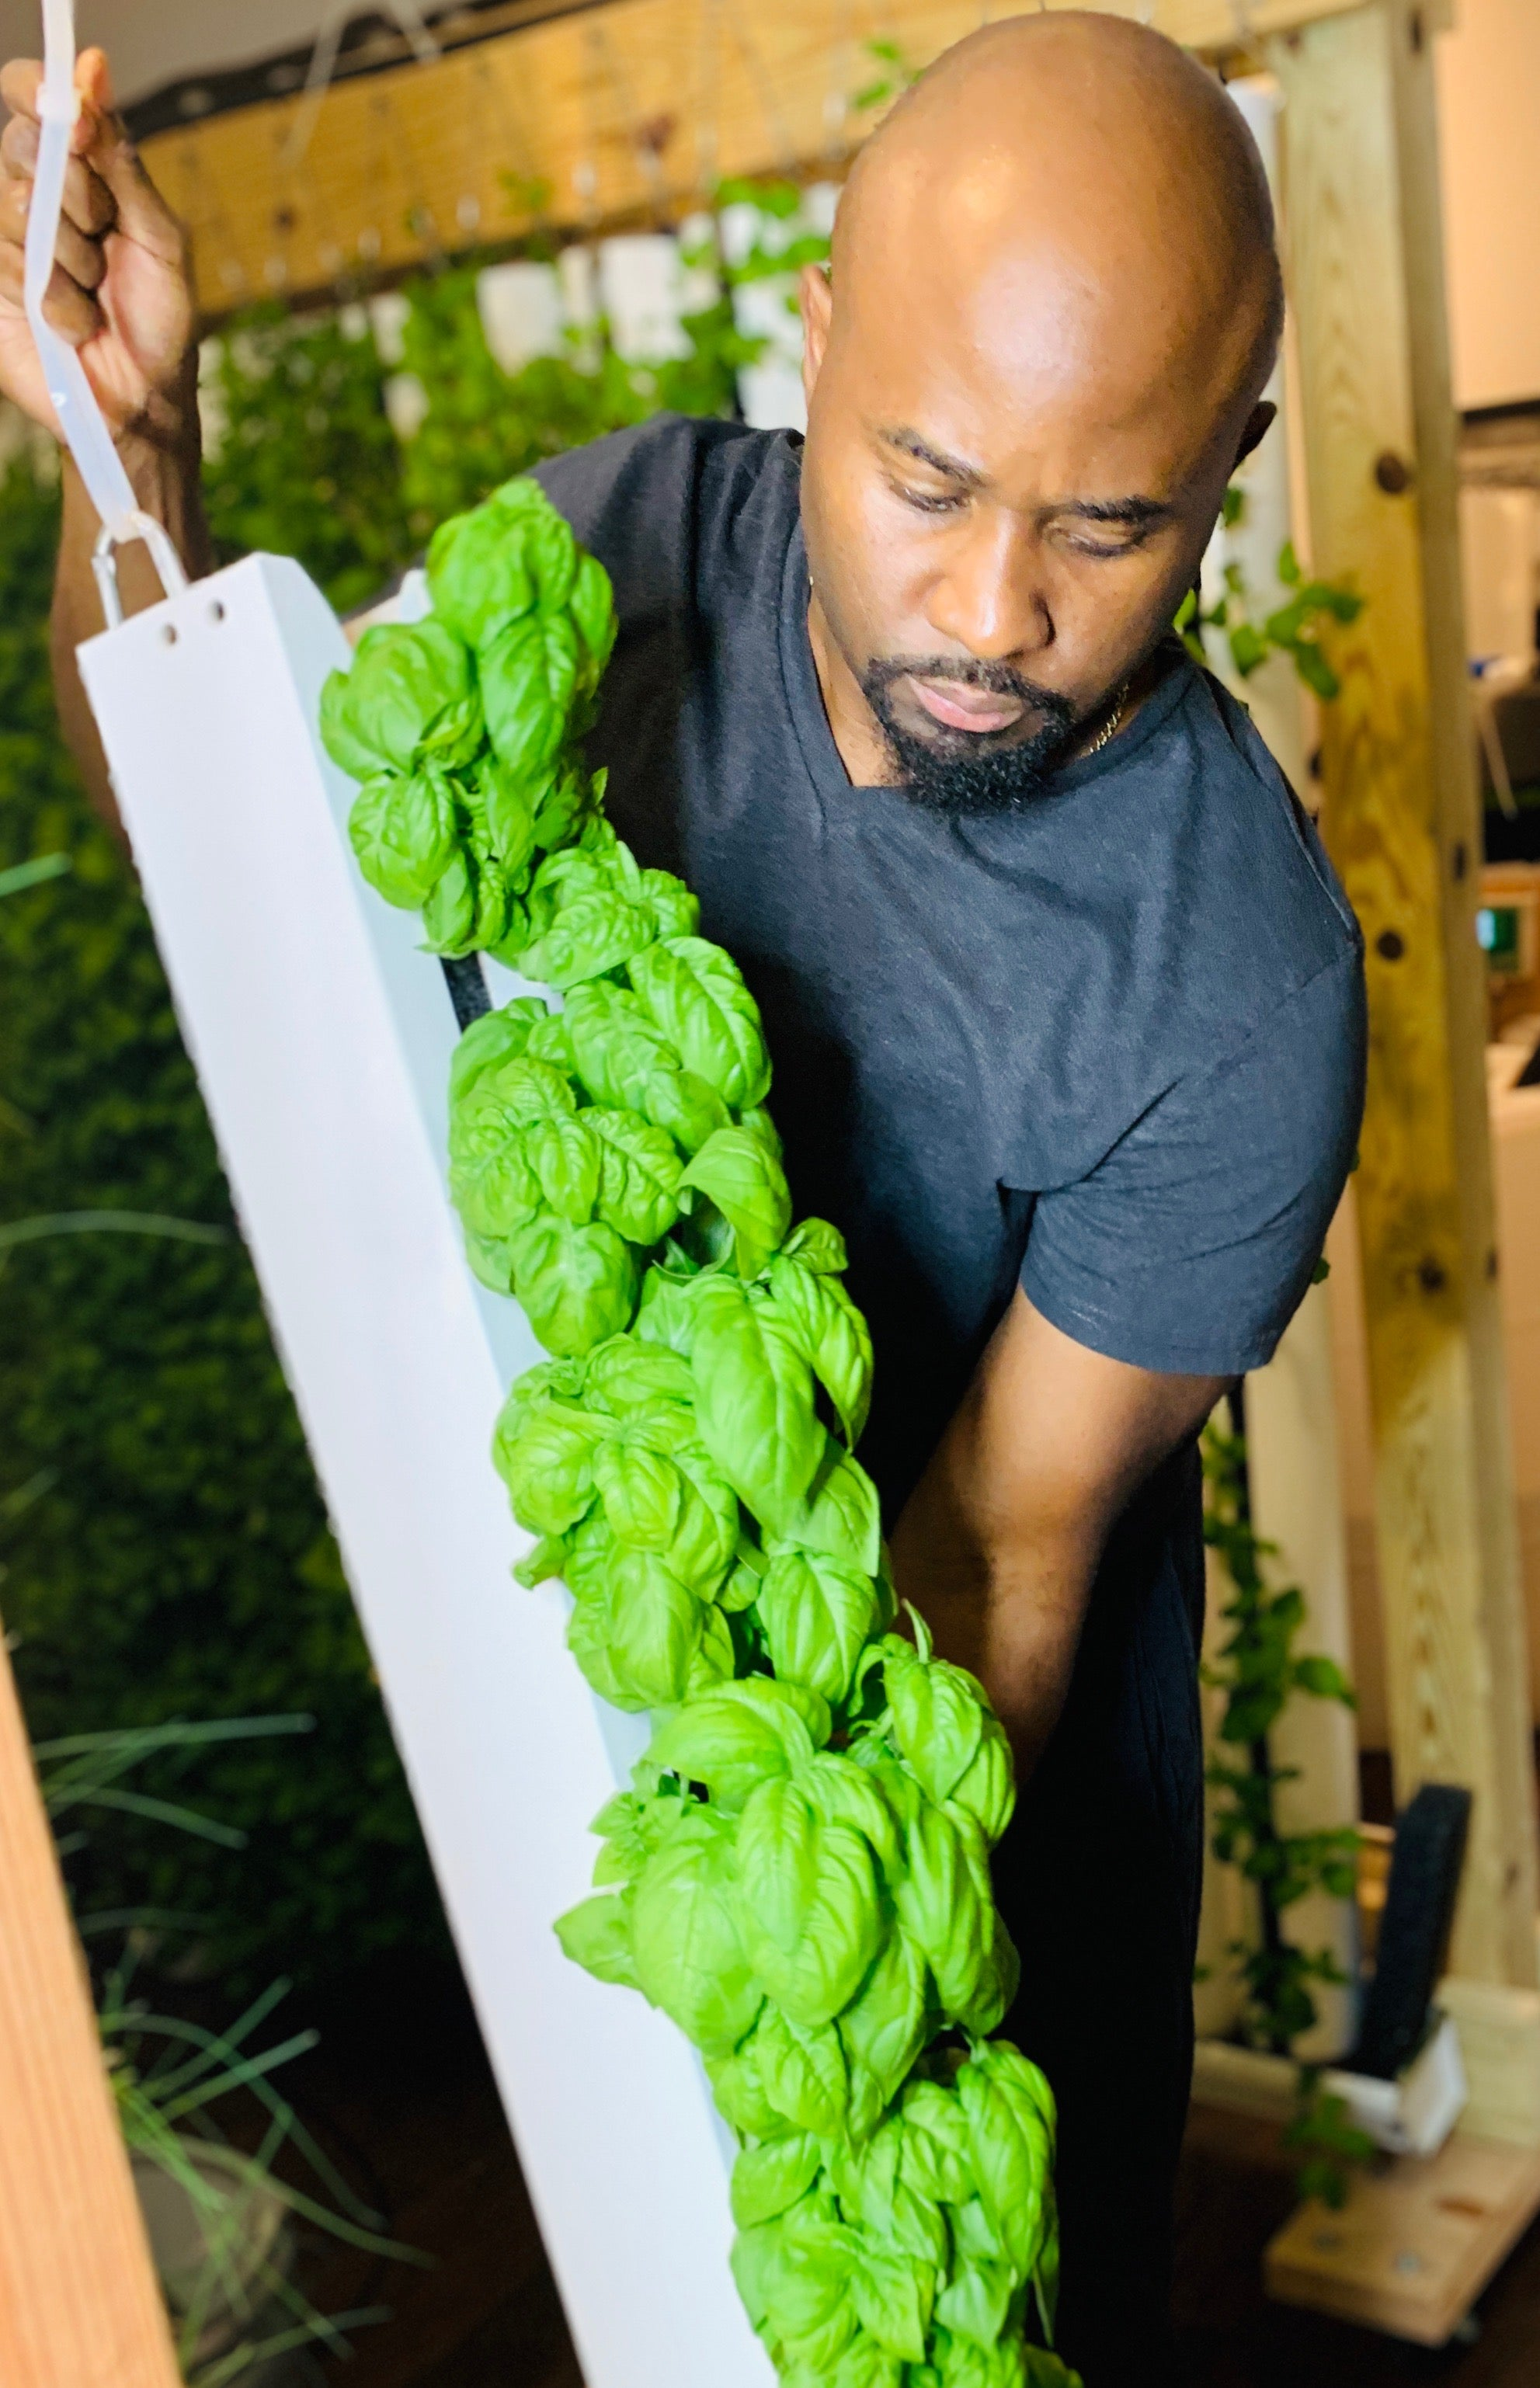 Richmond Biz Sense Article - New Urban Farm Venture Sprouts in Richmond